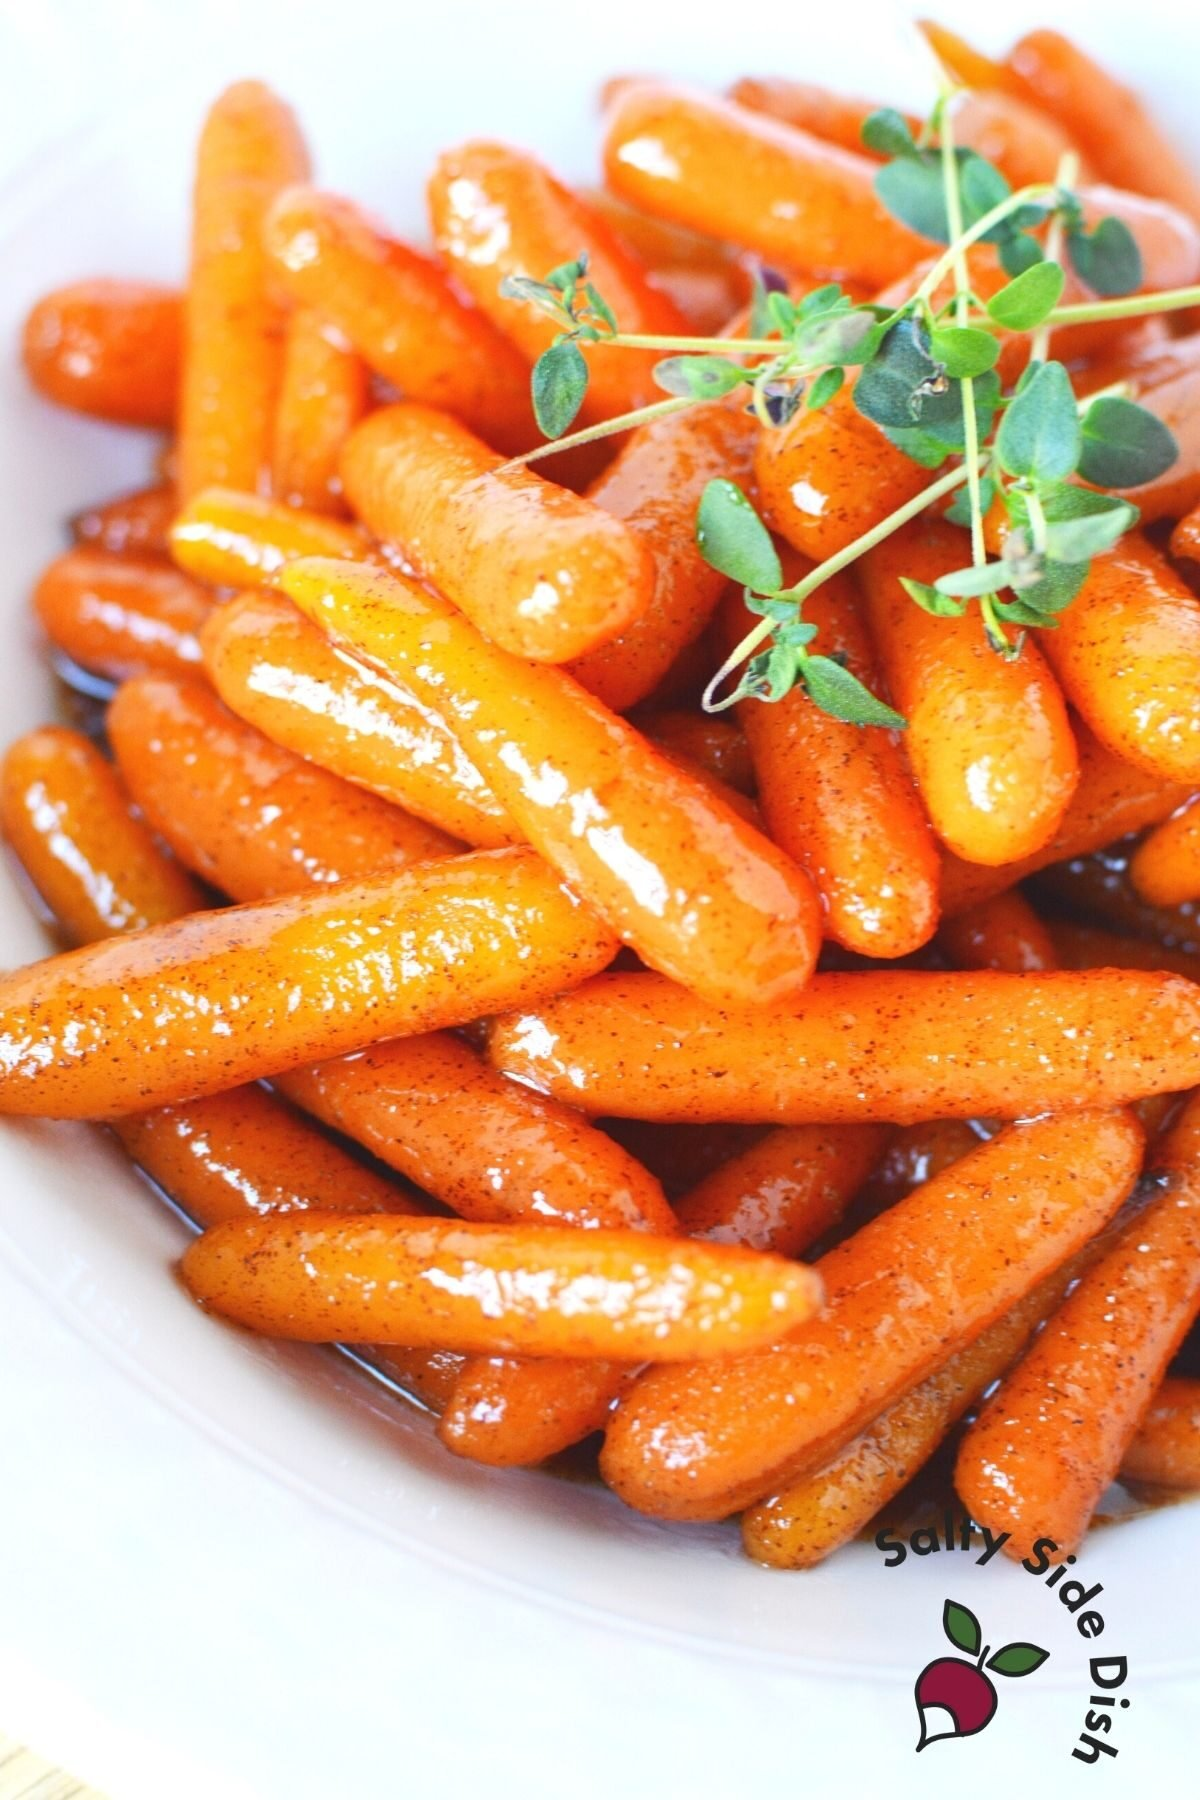 Cinnamon brown sugar glazed carrots on a white plate with herbs on top.